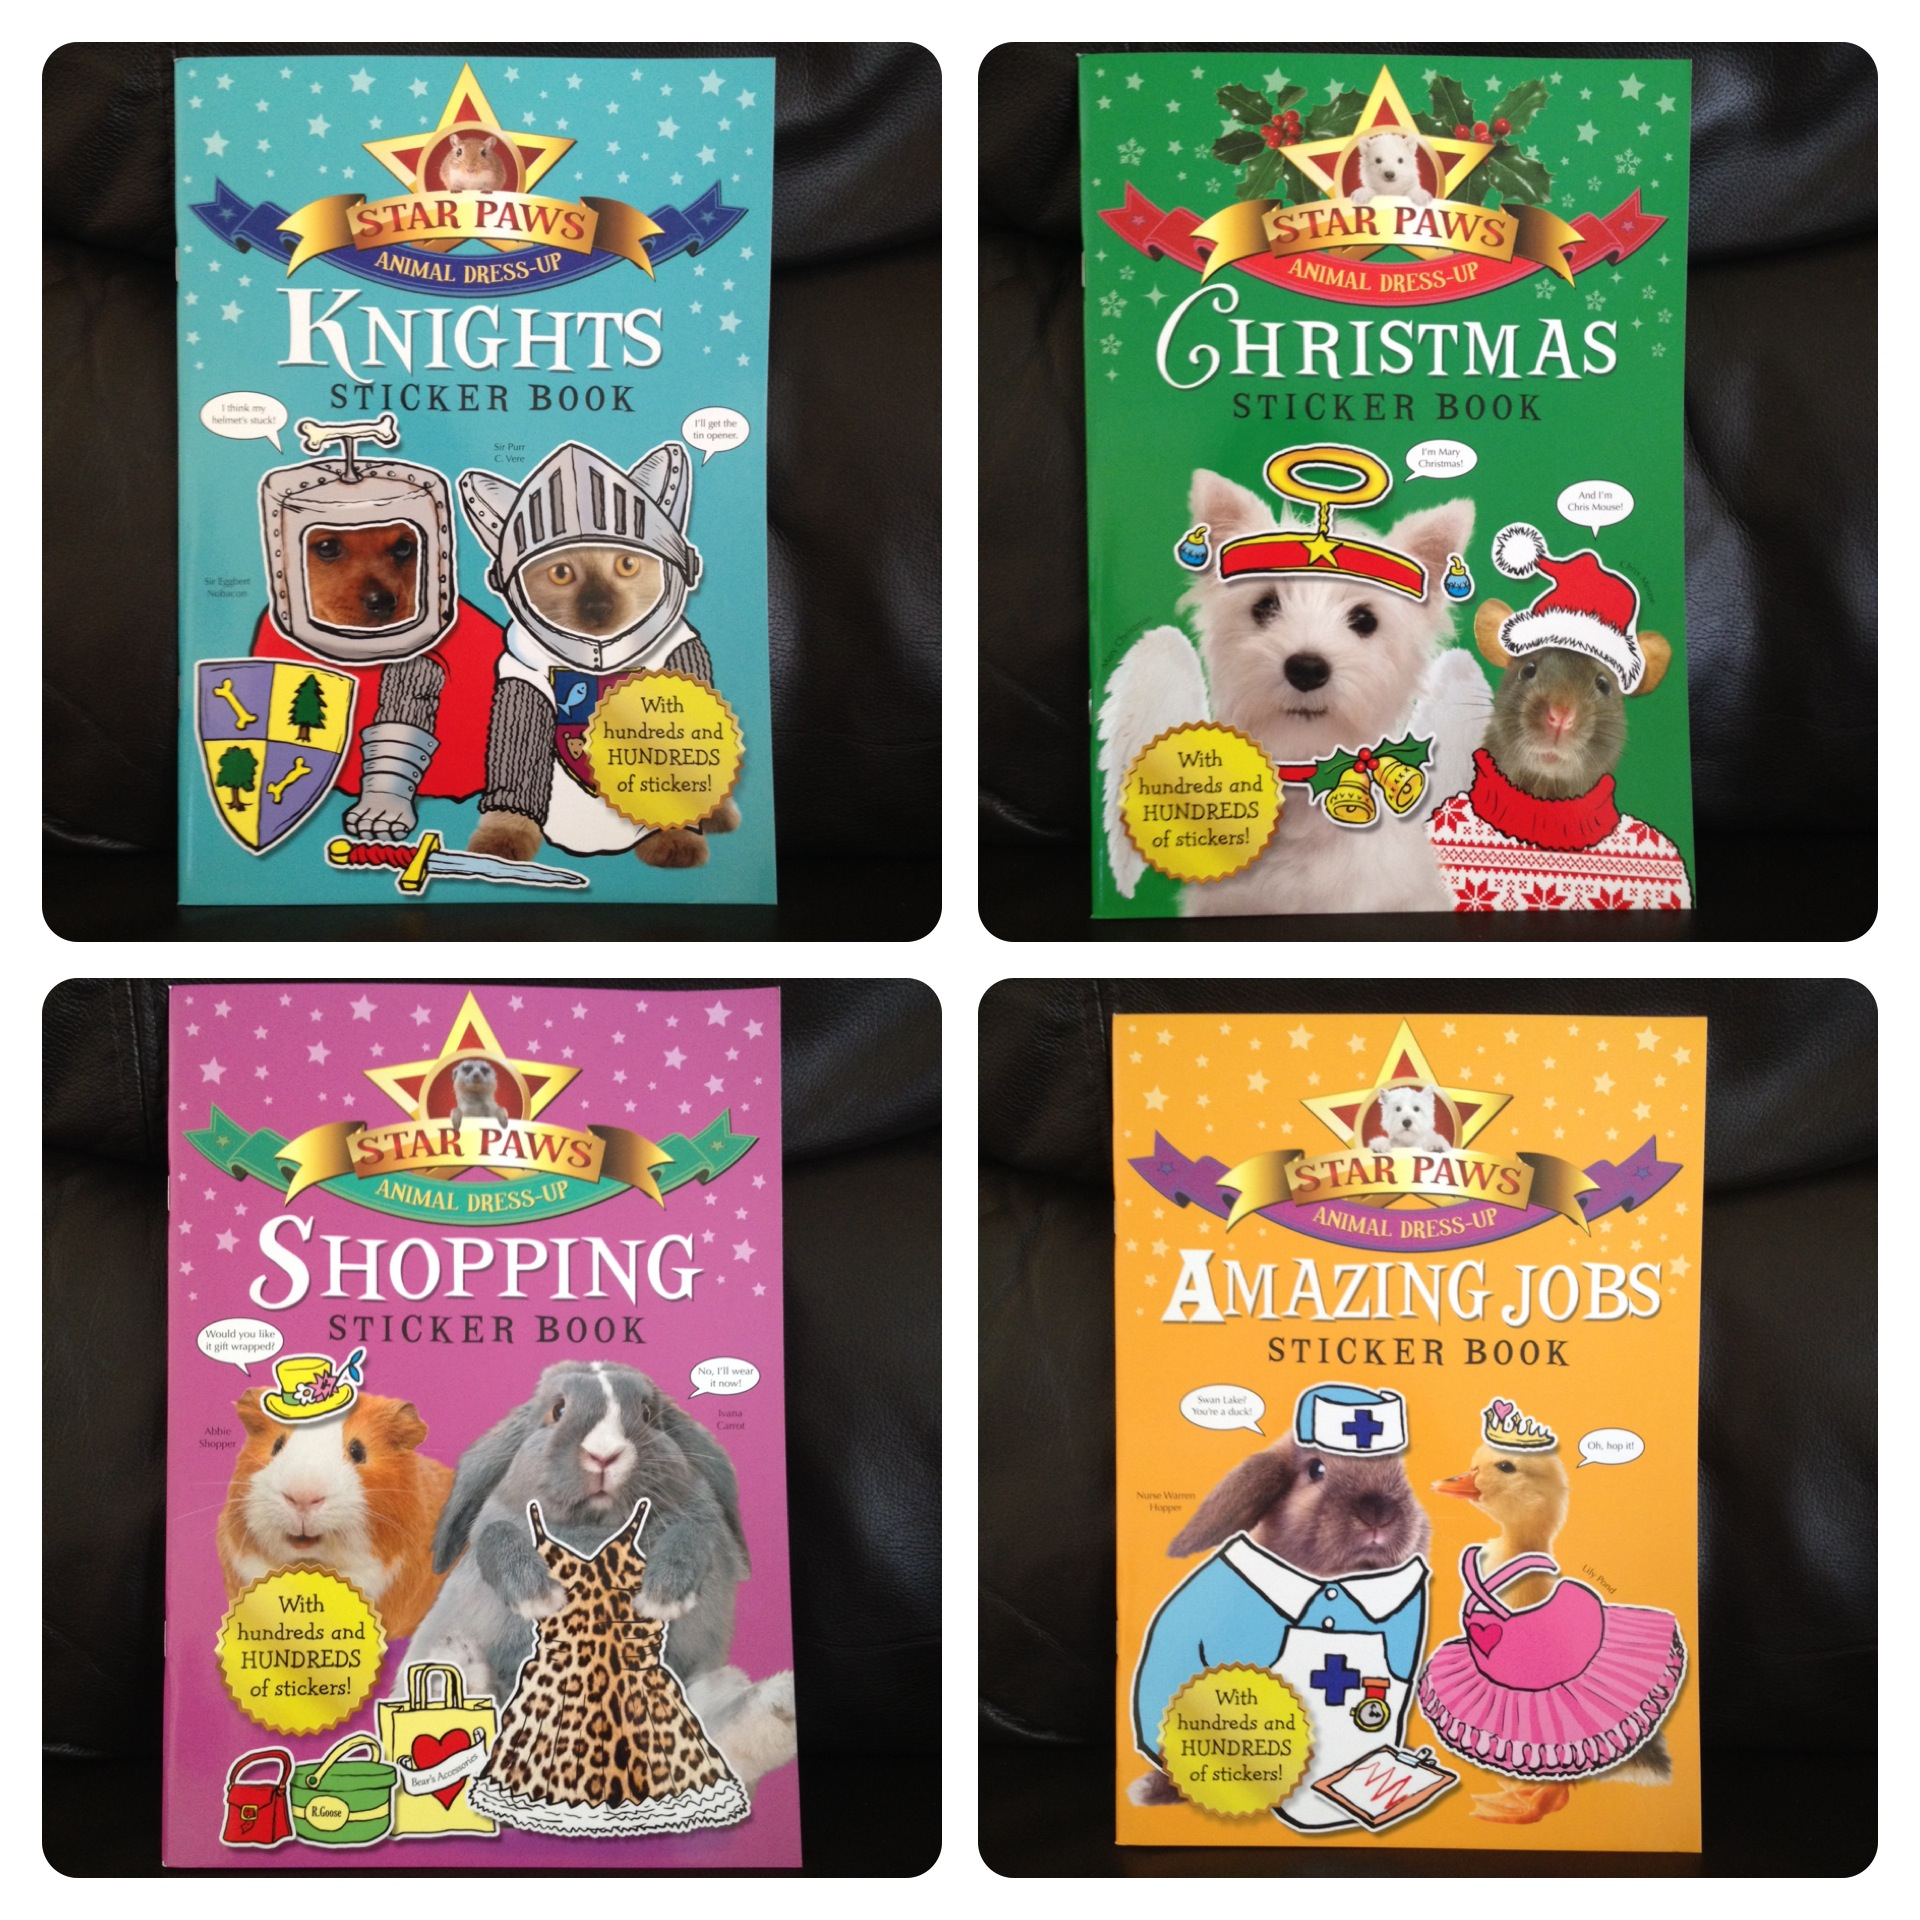 Star Paws Knights, Christmas, Shopping and Amazing Jobs